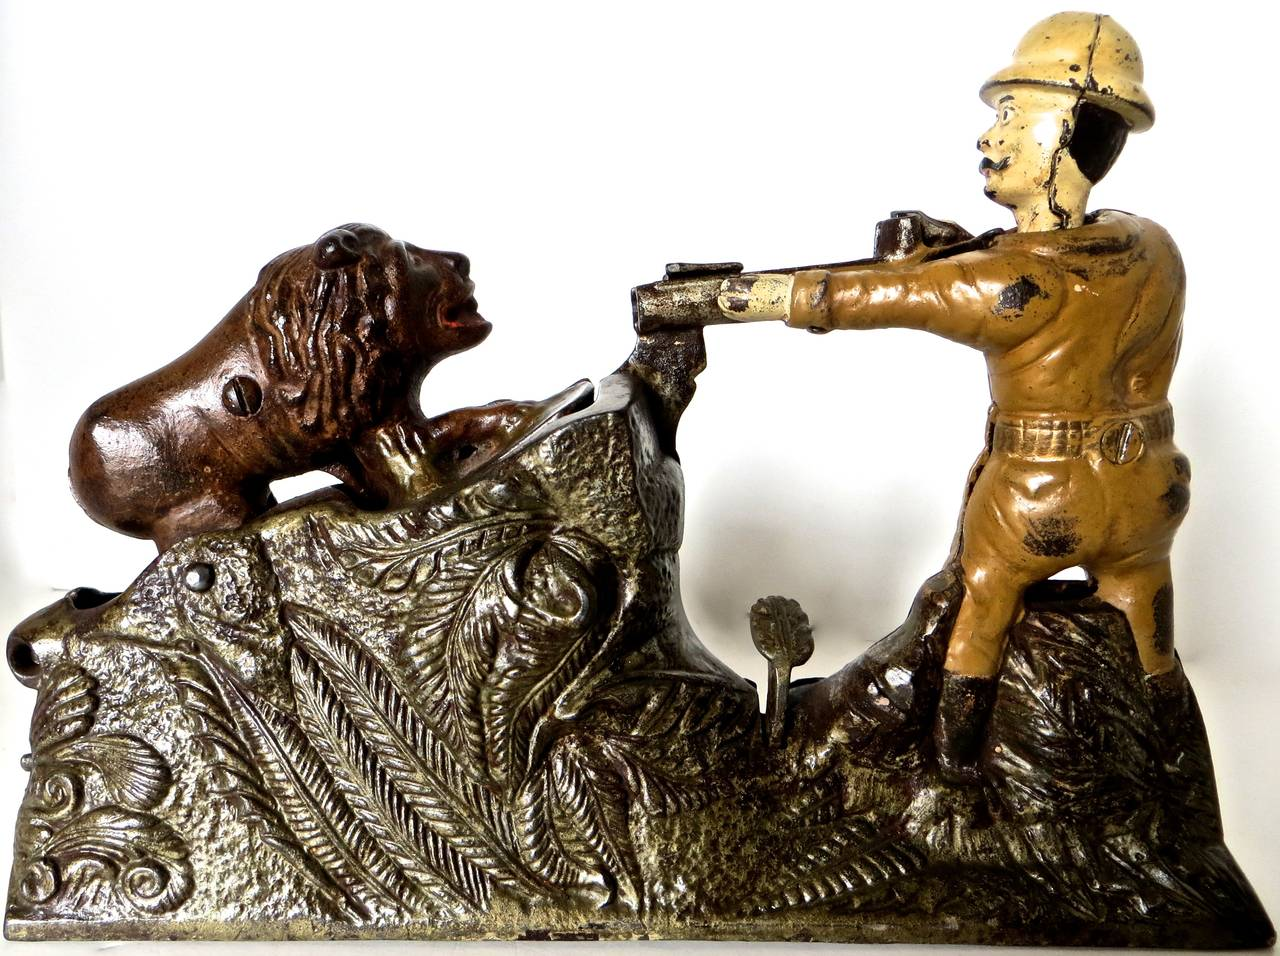 Manufactured in 1911 by the J. & E. Stevens Company in Cromwell, Connecticut, this cast iron mechanical bank depicts President Teddy Roosevelt aiming his rifle at a lion. Roosevelt is well-known for his affinity towards big game hunting, and